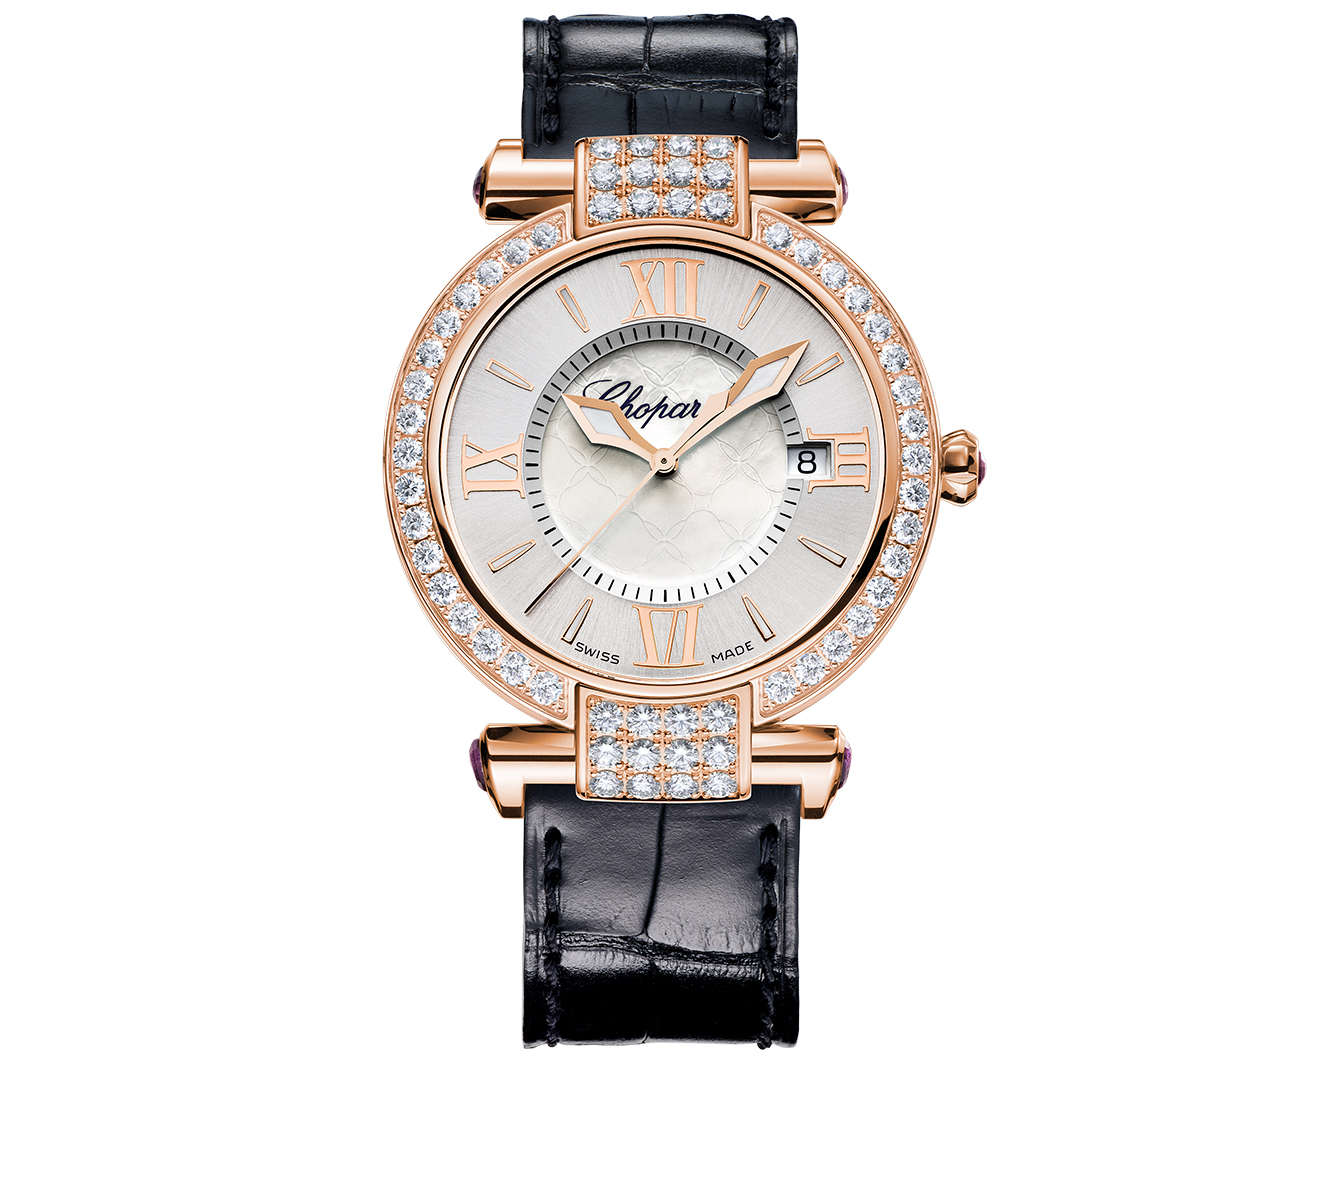 Часы Imperiale Chopard Imperiale 384221-5002 - фото 1 – Mercury